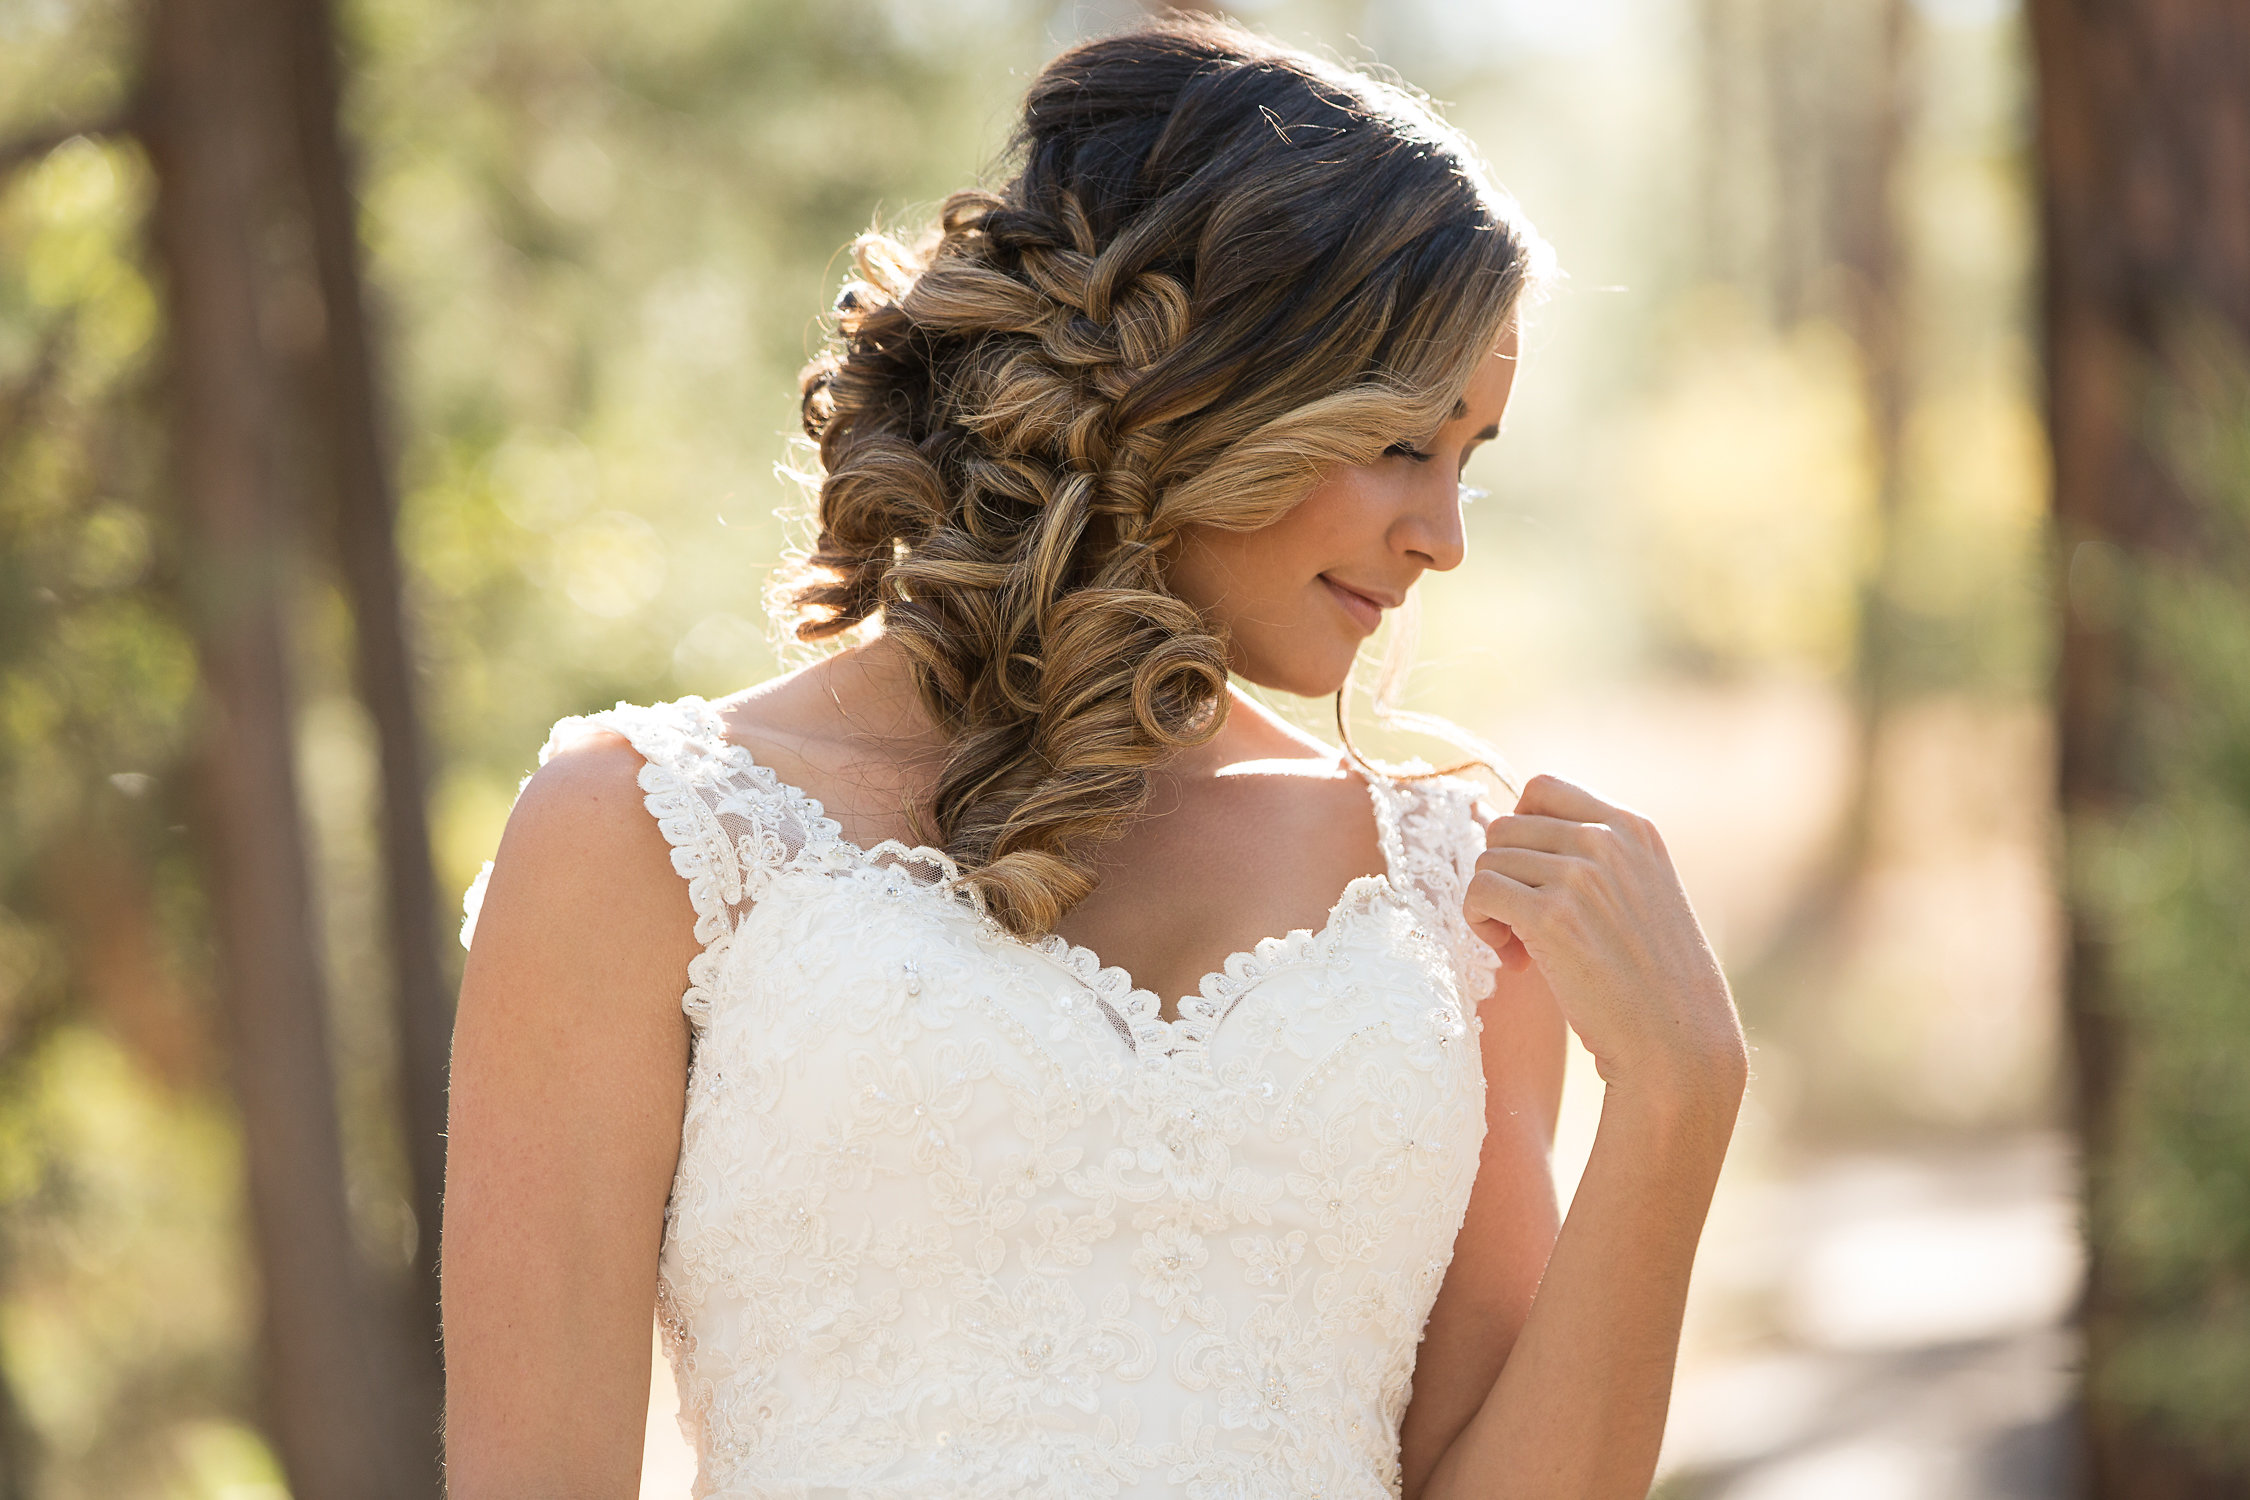 Hair by Fortune Brandel, Makeup by  Jenna Thompson